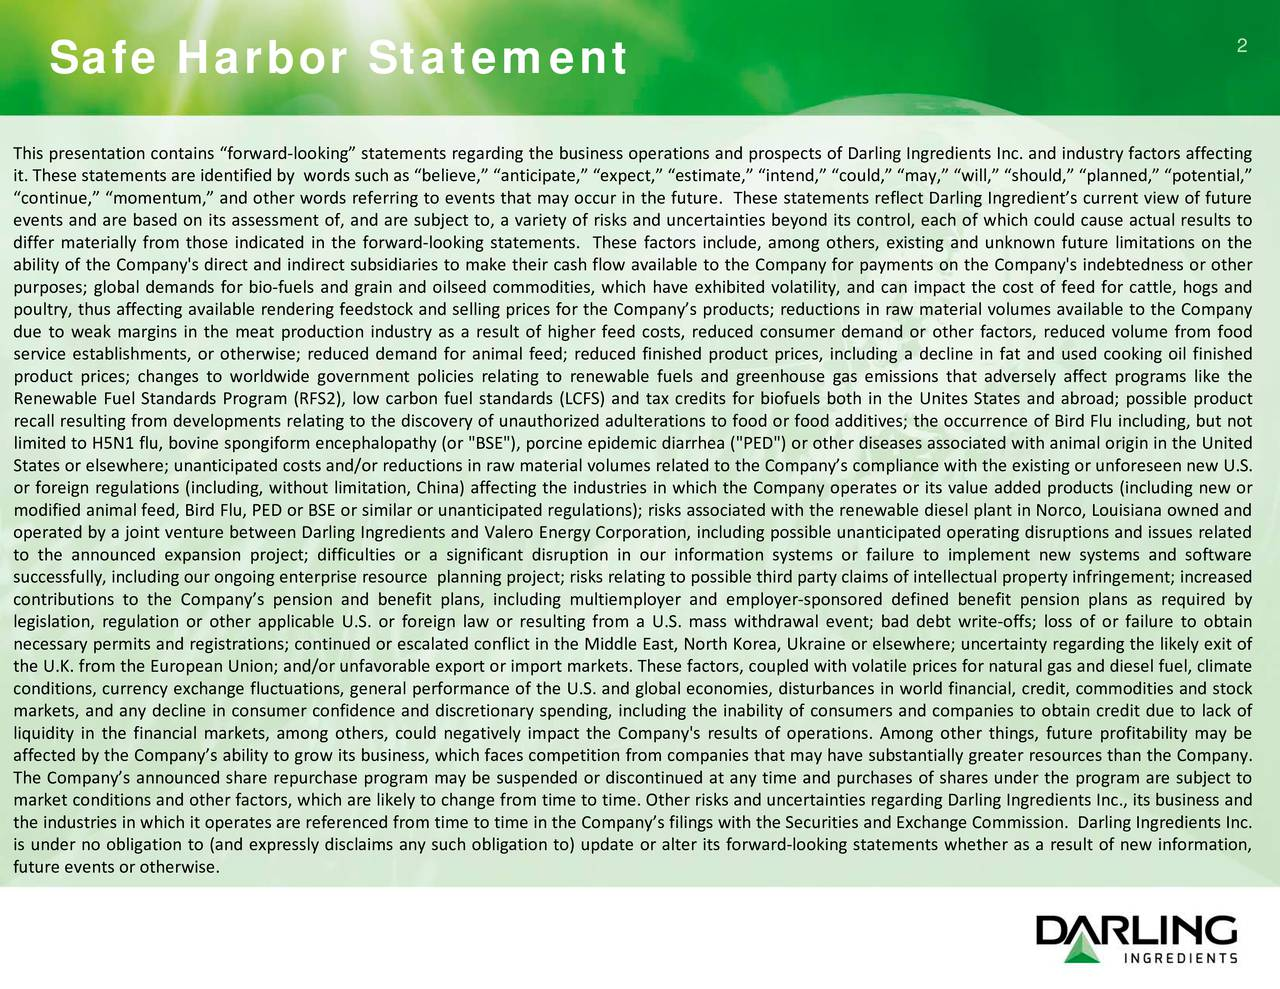 "Safe Harbor Statement This presentation contains forward-looking statements regarding the business operations and prospects of Darling Ingredients Inc. and industry factors affecting it. These statements are identified by words such as believe, anticipate, expect, estimate, intend, could, may,will, should, planned,potential, continue, momentum, and other words referring to events that may occur in the future. These statements reflect Darling Ingredients current view of future events and are based on its assessment of, and are subject to, a variety of risks and uncertainties beyond its control, each of which could cause actual results to differ materially from those indicated in the forward-looking statements. These factors include, among others, existing and unknown future limitations on the ability of the Company's direct and indirect subsidiaries to make their cash flow available to the Company for payments on the Company's indebtedness or other purposes; global demands for bio-fuels and grain and oilseed commodities, which have exhibited volatility, and can impact the cost of feed for cattle, hogs and poultry, thus affecting available rendering feedstock and selling prices for the Companys products; reductions in raw material volumes available to the Company due to weak margins in the meat production industry as a result of higher feed costs, reduced consumer demand or other factors, reduced volume from food service establishments, or otherwise; reduced demand for animal feed; reduced finished product prices, including a decline in fat and used cooking oil finished product prices; changes to worldwide government policies relating to renewable fuels and greenhouse gas emissions that adversely affect programs like the Renewable Fuel Standards Program (RFS2), low carbon fuel standards (LCFS) and tax credits for biofuels both in the Unites States and abroad; possible product recall resulting from developments relating to the discovery of unauthorized adulterations to food or food additives; the occurrence of Bird Flu including, but not limited to H5N1 flu, bovine spongiform encephalopathy (or ""BSE""), porcine epidemic diarrhea (""PED"") or other diseases associated with animal origin in the United States or elsewhere; unanticipated costs and/or reductions in raw material volumes related to the Companys compliance with the existing or unforeseen new U.S. or foreign regulations (including, without limitation, China) affecting the industries in which the Company operates or its value added products (including new or modified animal feed, Bird Flu, PED or BSE or similar or unanticipated regulations); risks associated with the renewable diesel plant in Norco, Louisiana owned and operated by a joint venture between Darling Ingredients and Valero Energy Corporation, including possible unanticipated operating disruptions and issues related to the announced expansion project; difficulties or a significant disruption in our information systems or failure to implement new systems and software successfully,including our ongoing enterprise resource planning project; risks relating to possible third party claims of intellectual property infringement; increased contributions to the Companys pension and benefit plans, including multiemployer and employer-sponsored defined benefit pension plans as required by legislation, regulation or other applicable U.S. or foreign law or resulting from a U.S. mass withdrawal event; bad debt write-offs; loss of or failure to obtain necessary permits and registrations; continued or escalated conflict in the Middle East, North Korea, Ukraine or elsewhere; uncertainty regarding the likely exit of the U.K. from the European Union; and/or unfavorable export or import markets. These factors, coupled with volatile prices for natural gas and diesel fuel, climate conditions, currency exchange fluctuations, general performance of the U.S. and global economies, disturbances in world financial, credit, commodities and stock markets, and any decline in consumer confidence and discretionary spending, including the inability of consumers and companies to obtain credit due to lack of liquidity in the financial markets, among others, could negatively impact the Company's results of operations. Among other things, future profitability may be affected by the Companys ability to grow its business, which faces competition from companies that may have substantially greater resources than the Company. The Companys announced share repurchase program may be suspended or discontinued at any time and purchases of shares under the program are subject to market conditions and other factors, which are likely to change from time to time. Other risks and uncertainties regarding Darling Ingredients Inc., its business and the industries in which it operates are referenced from time to time in the Companys filings with the Securities and Exchange Commission. Darling Ingredients Inc. is under no obligation to (and expressly disclaims any such obligation to) update or alter its forward-looking statements whether as a result of newtion, future events or otherwise."